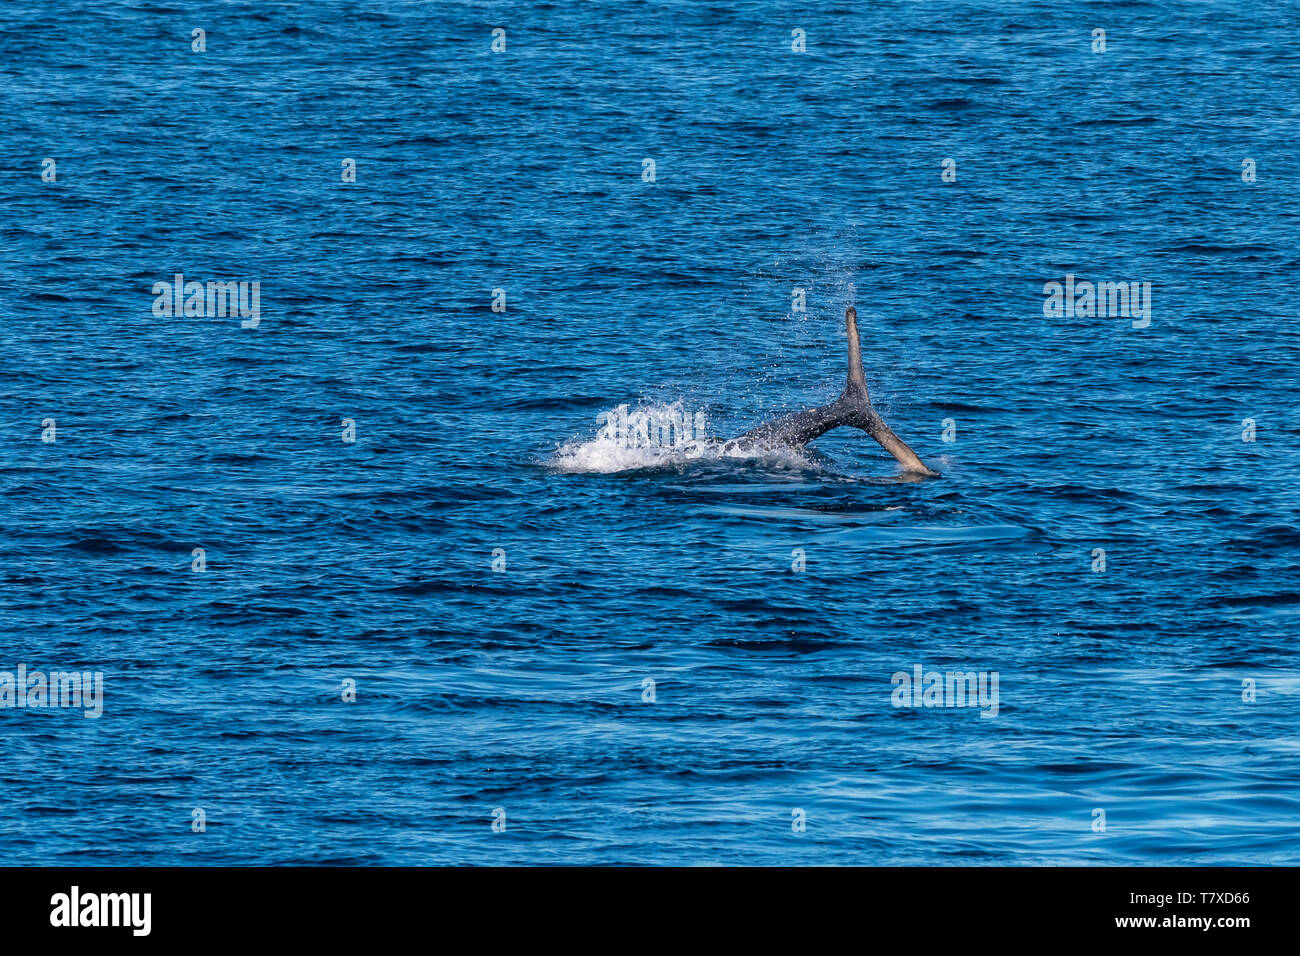 Humpback Whale (Megaptera novaeangliae) lobtailing (smacking surface of water with its tail flukes) off the coast of Baja California, Mexico. - Stock Image